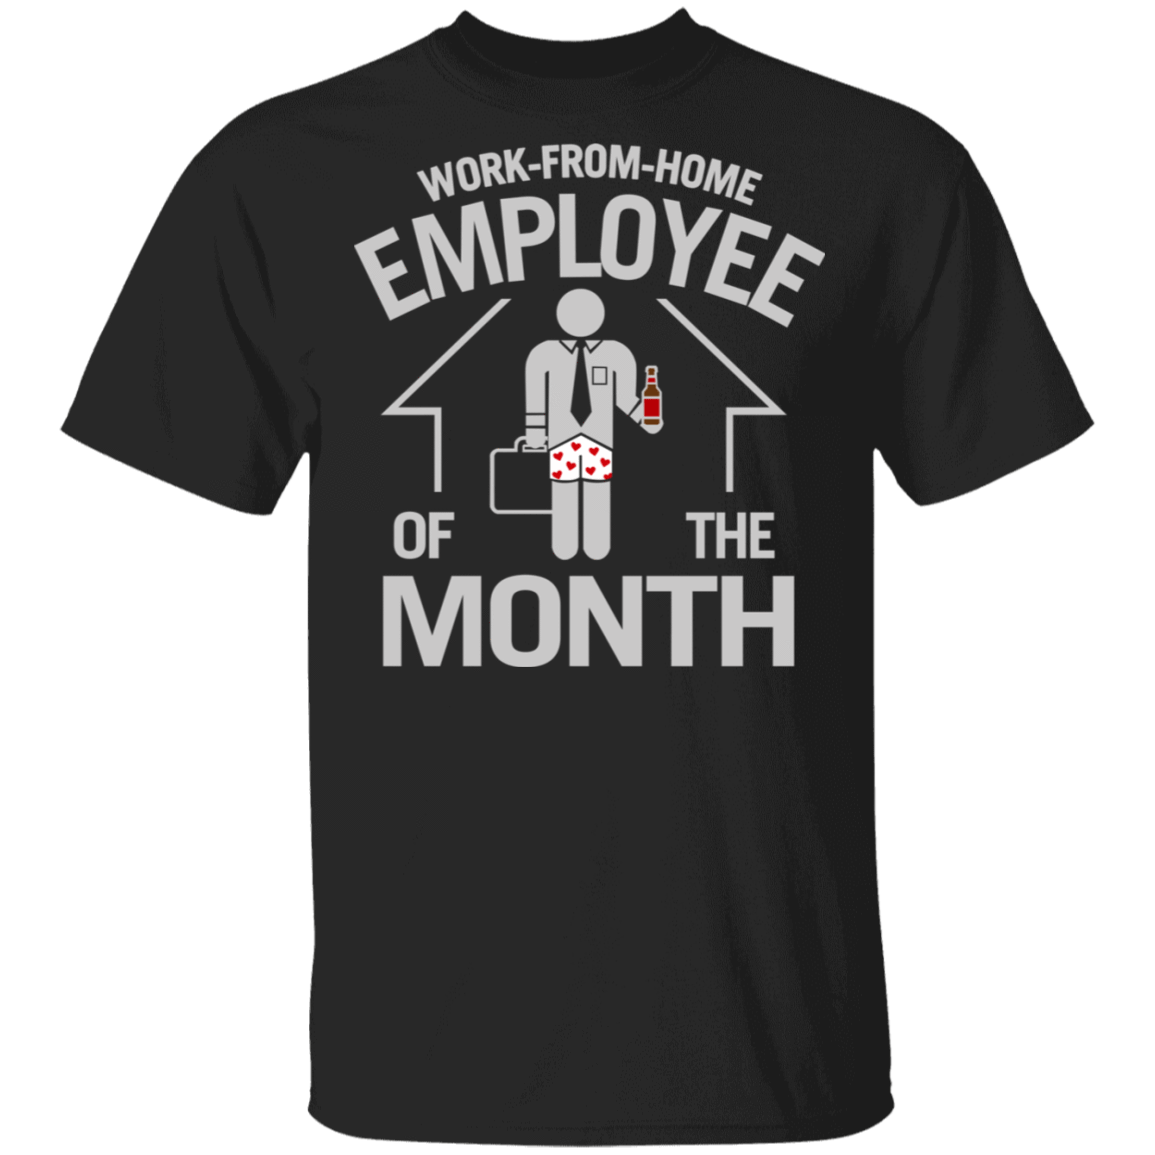 Work-From-Home Employee Of The Month T-Shirts, Hoodies 1049-9953-86026488-48144 - Tee Ript